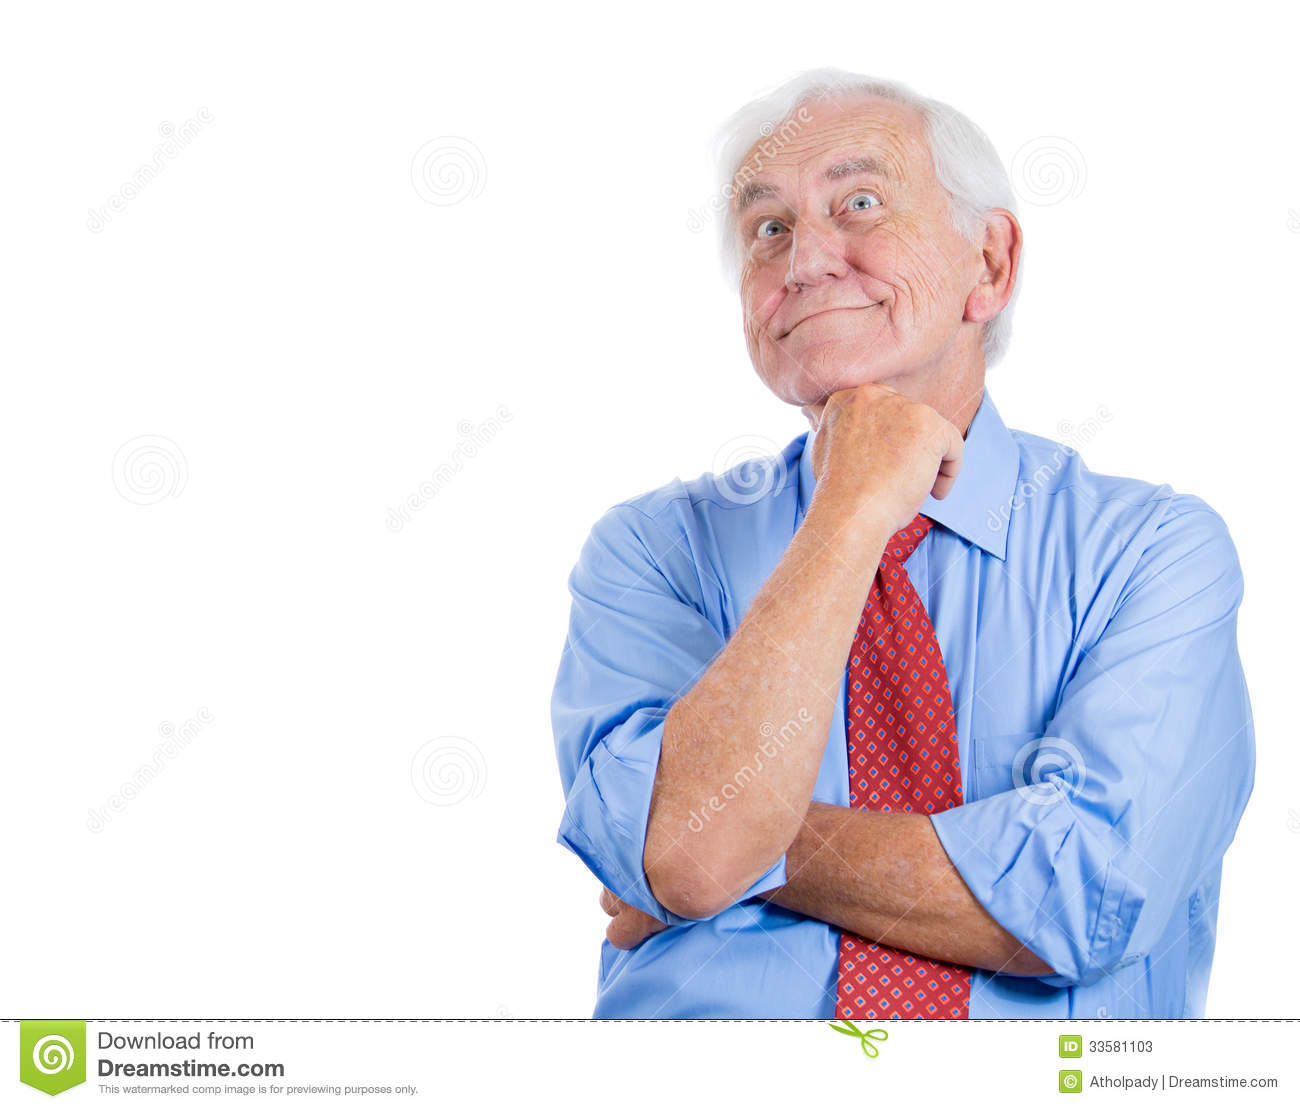 senior-elderly-mature-man-daydreaming-something-makes-him-happy-closeup-portrait-forgetting-isolated-white-33581103.jpg